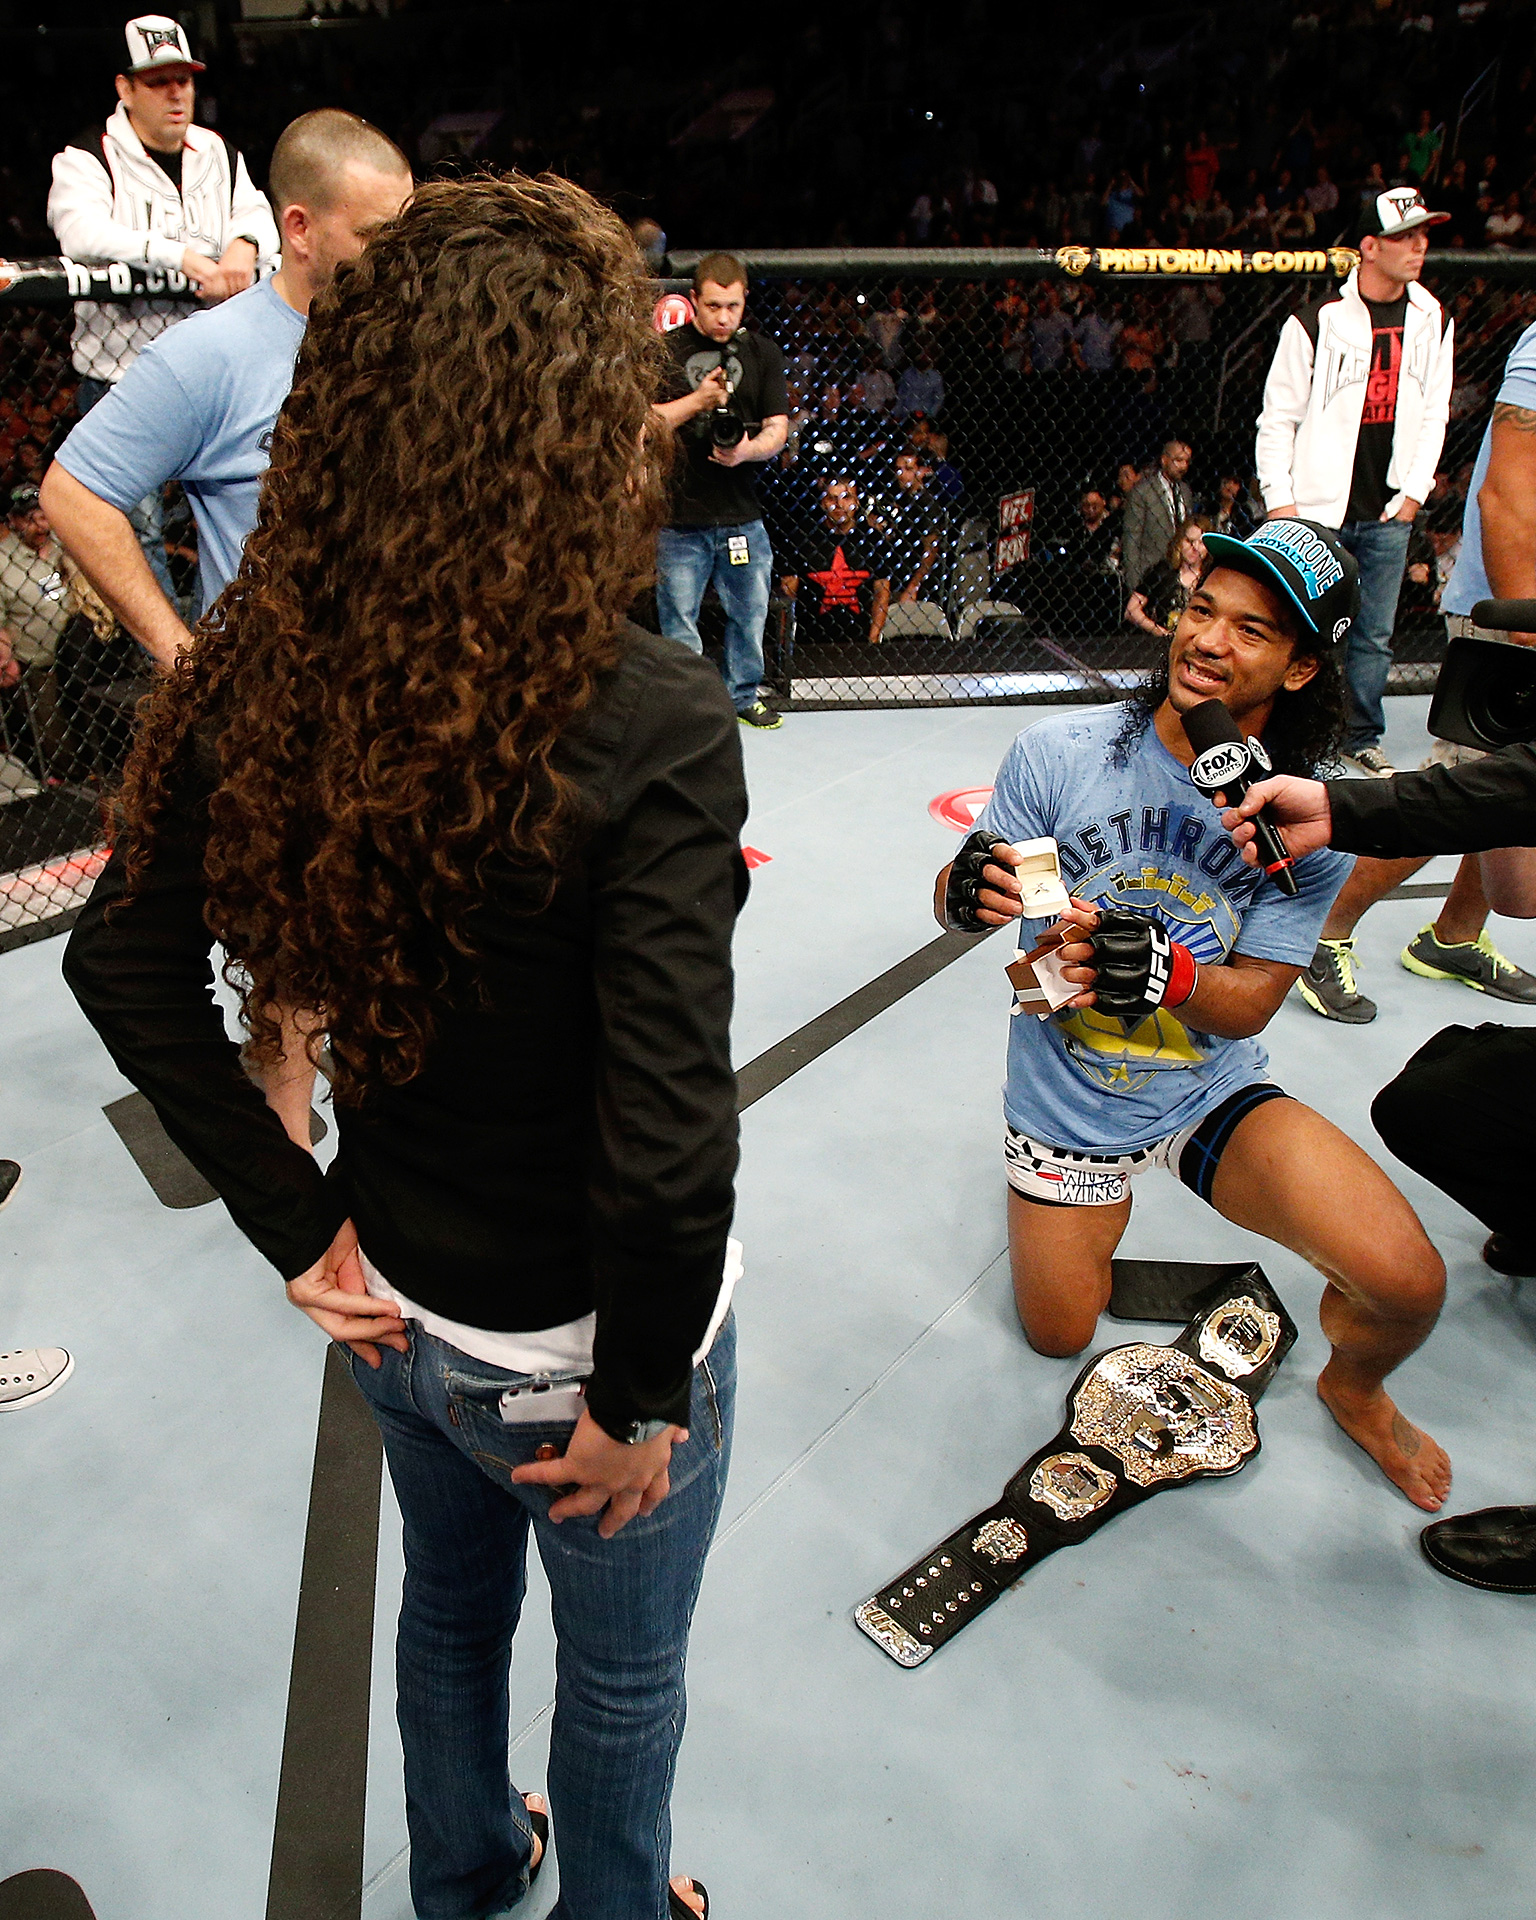 After defending his UFC lightweight title in April of 2013, Benson Henderson opted out of the traditional postfight interview and instead asked his girlfriend Maria Magana to marry him.